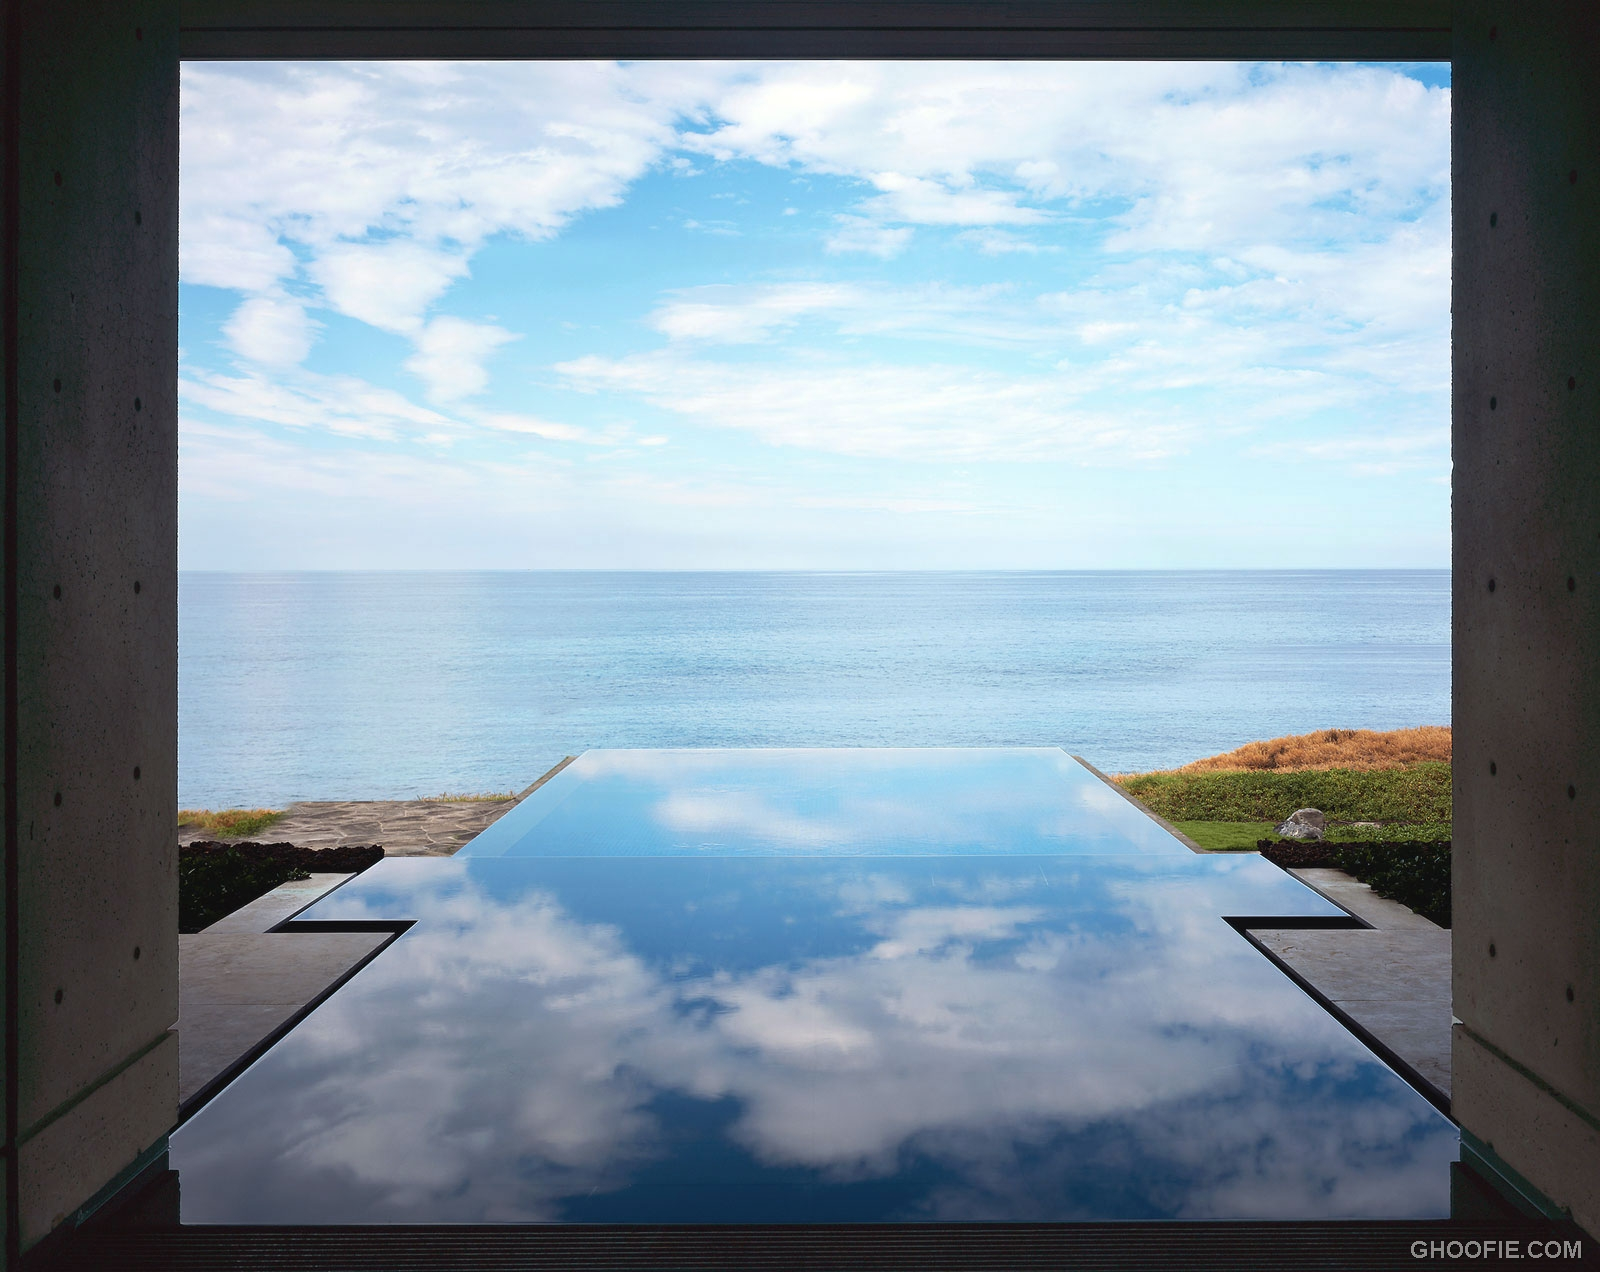 Amazing Infinity Pool With Pacific Ocean View Interior